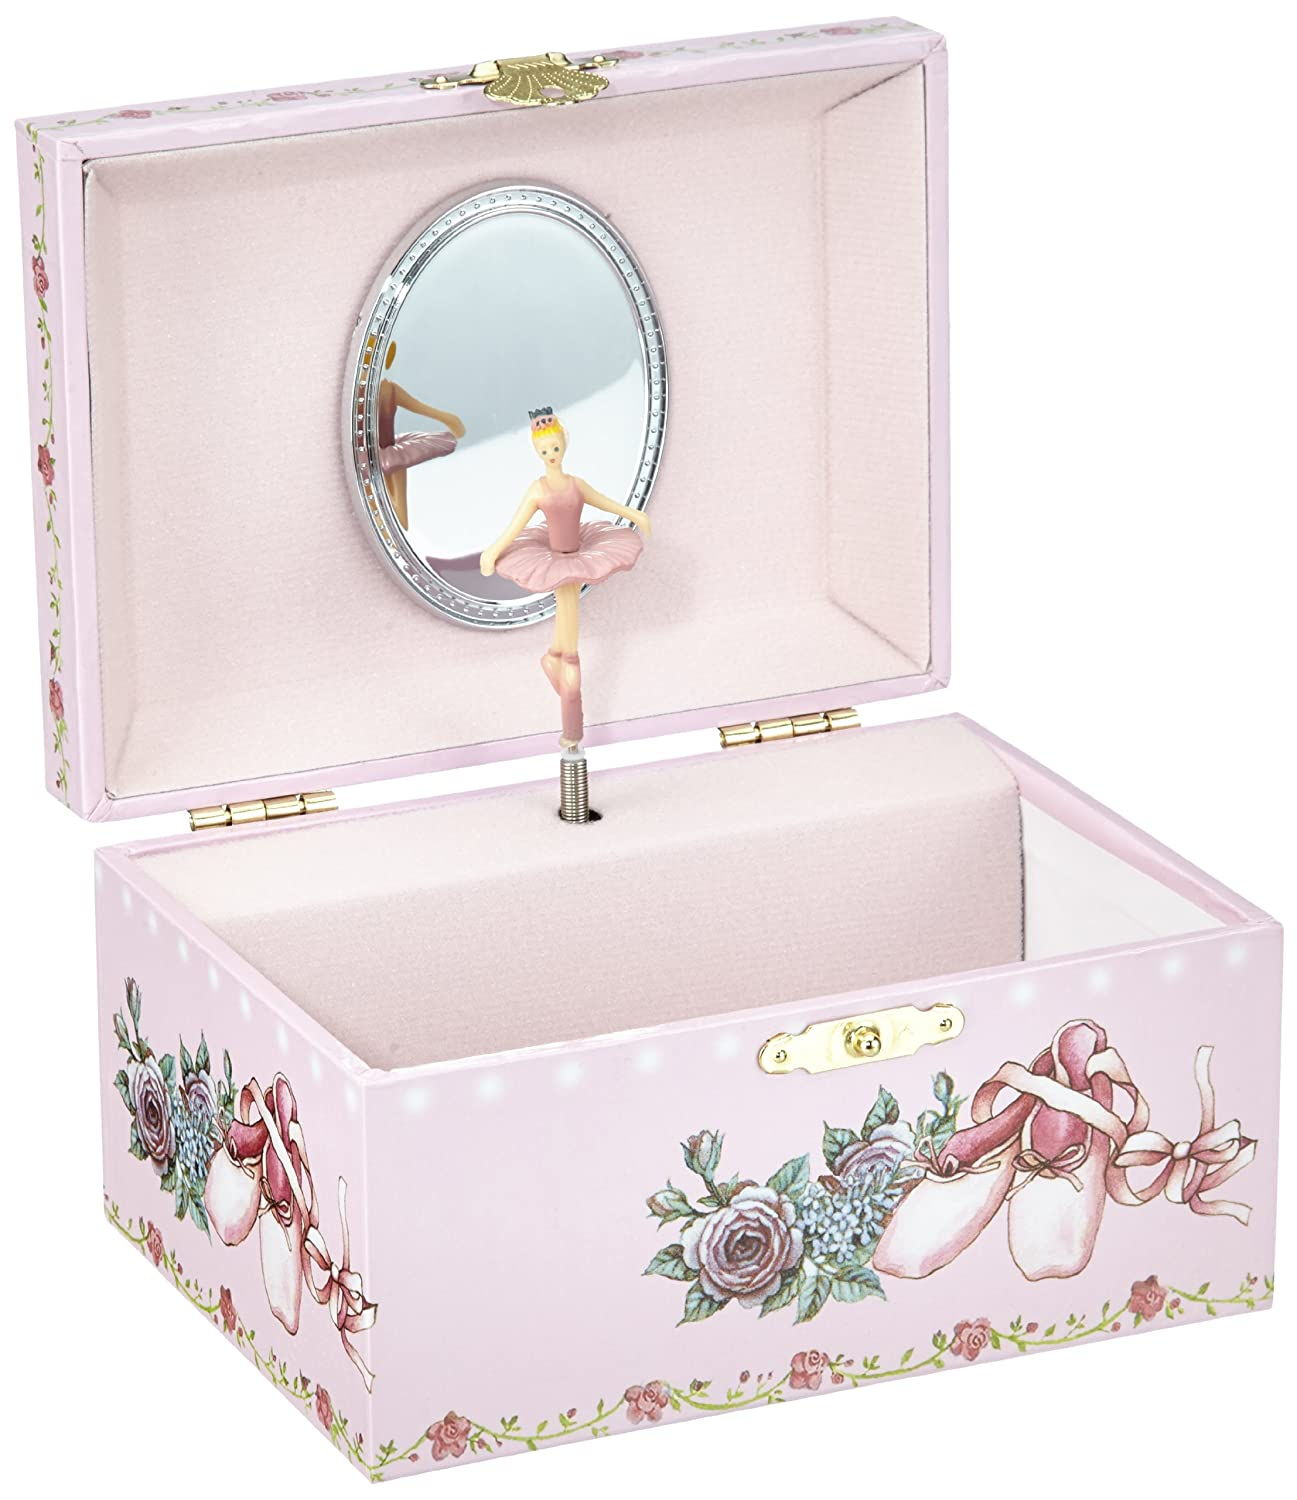 ウイスキー専門店 蔵人クロード MusicBox Music Kingdom 28050 Ballerina Playing Shoes Jewellery Music Ballerina Box Playing The Melody